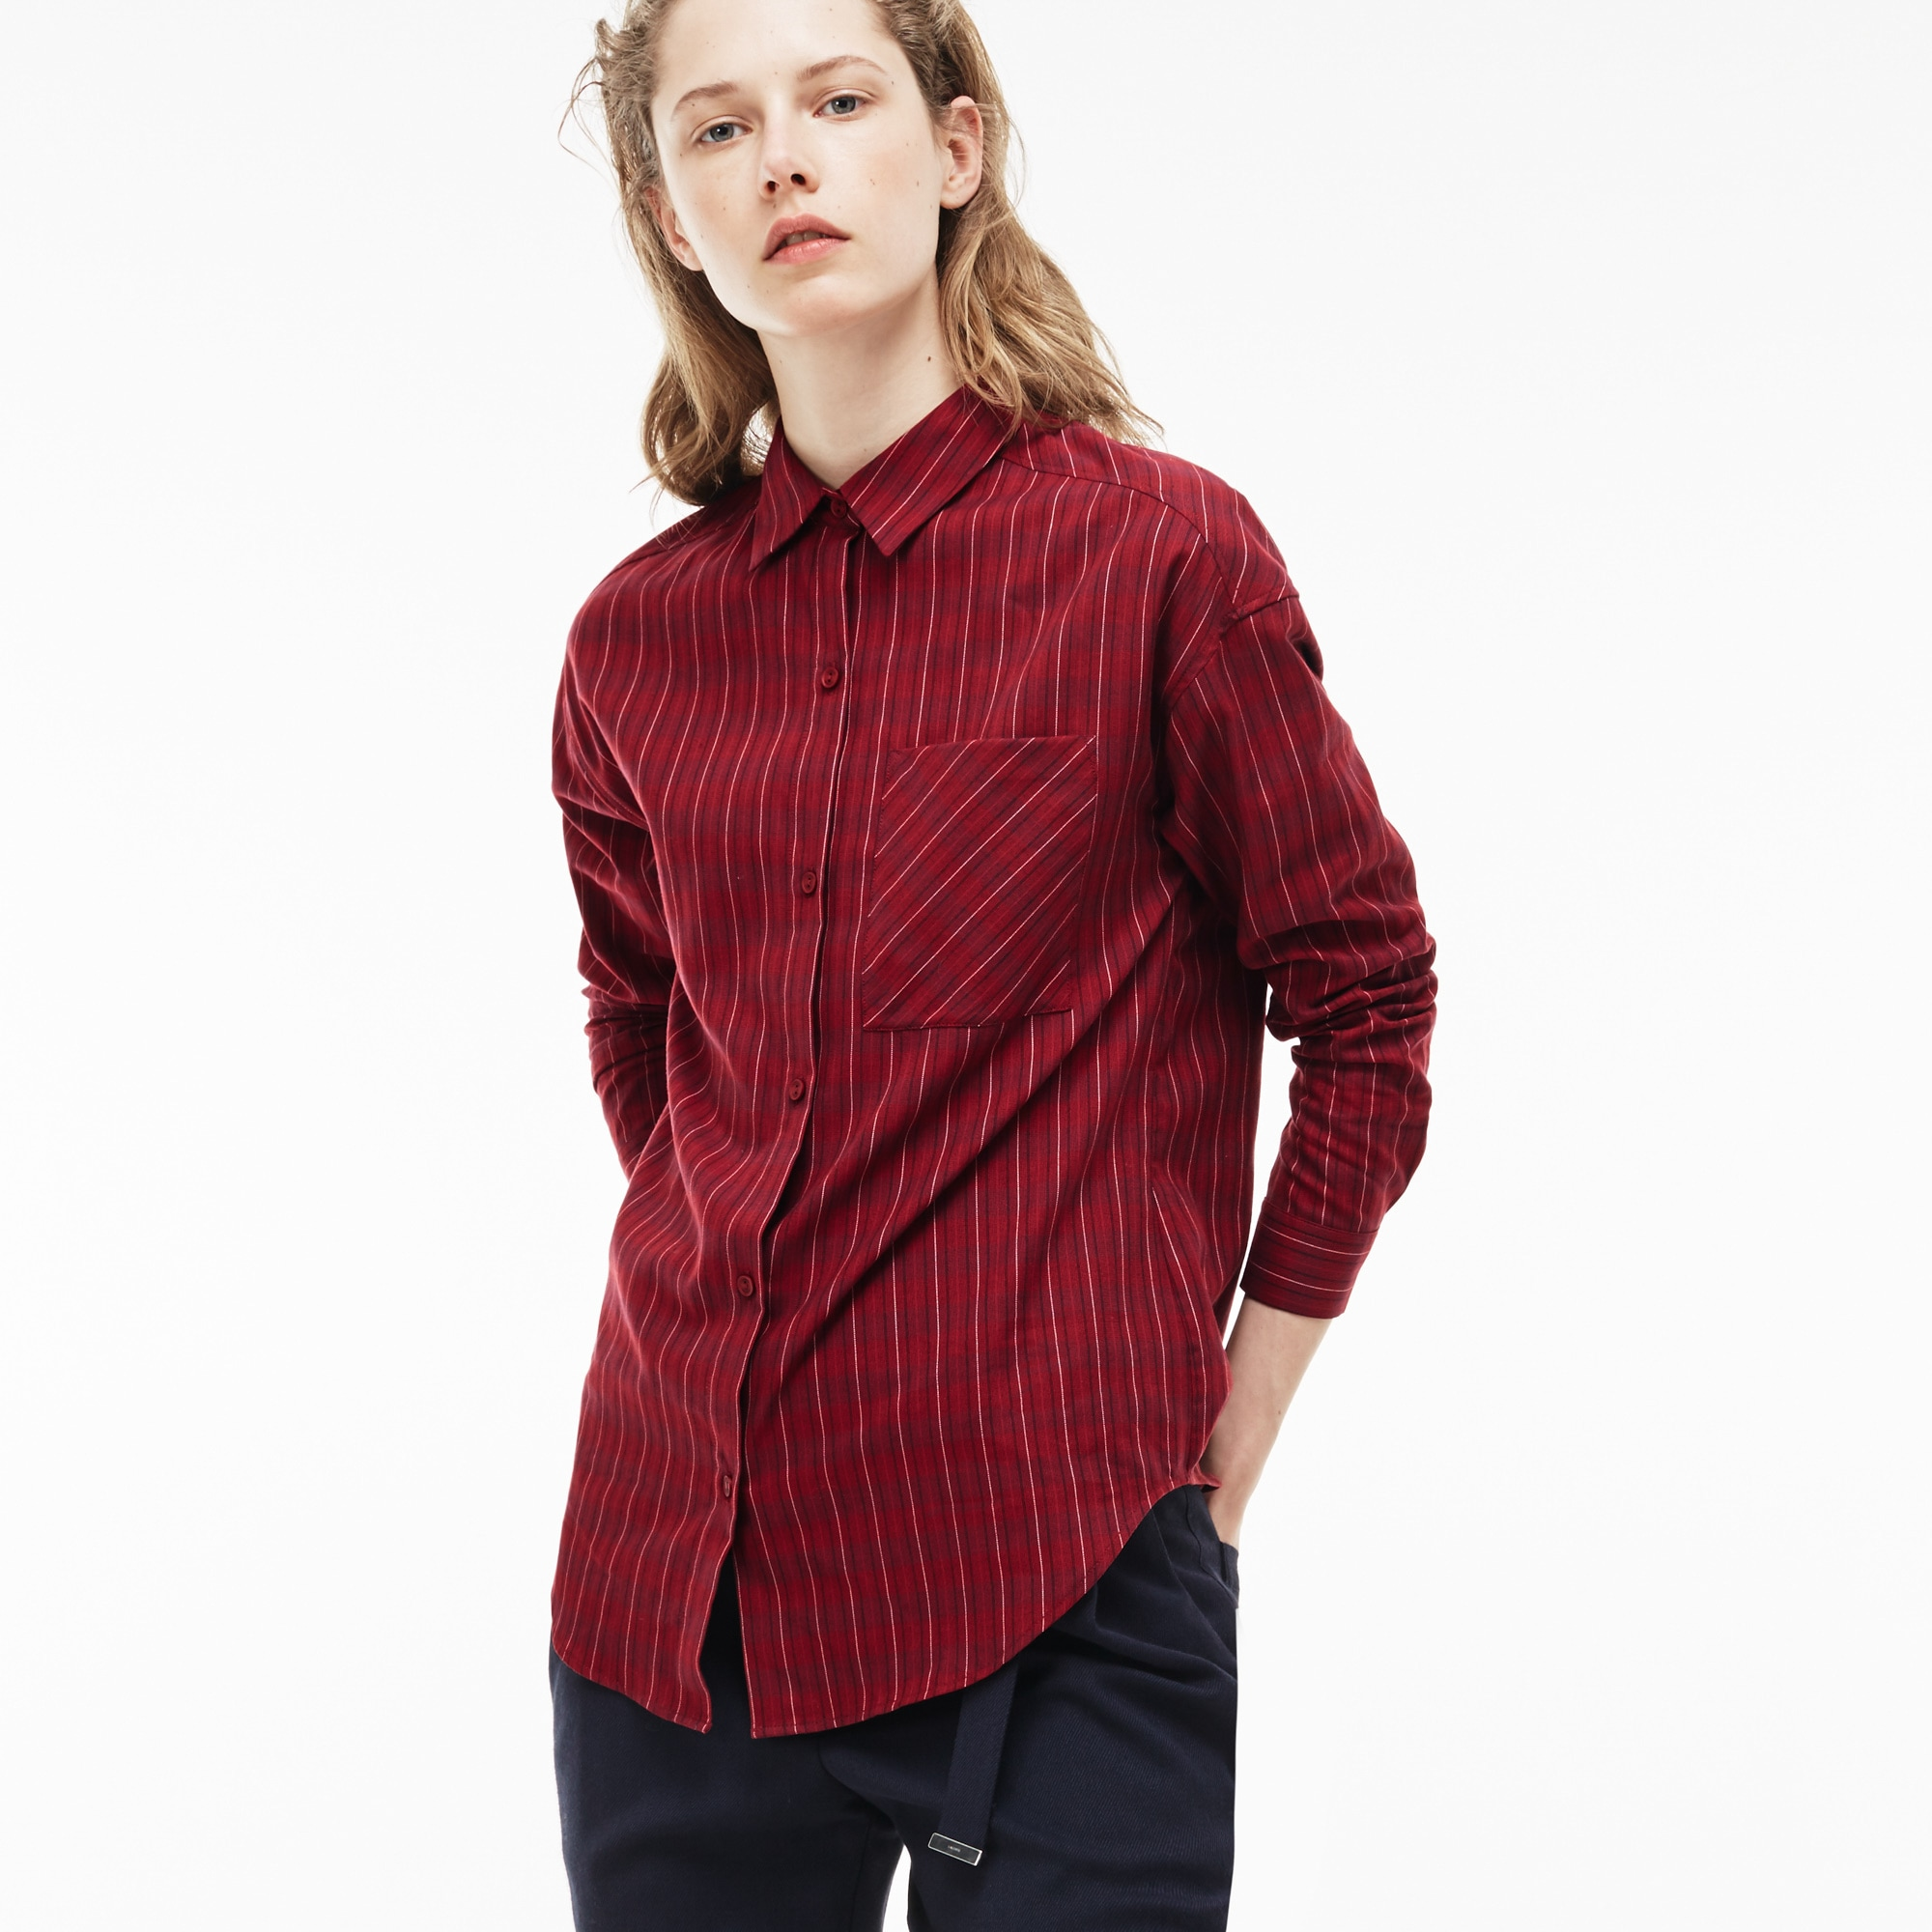 Women's Check Cotton Poplin Shirt